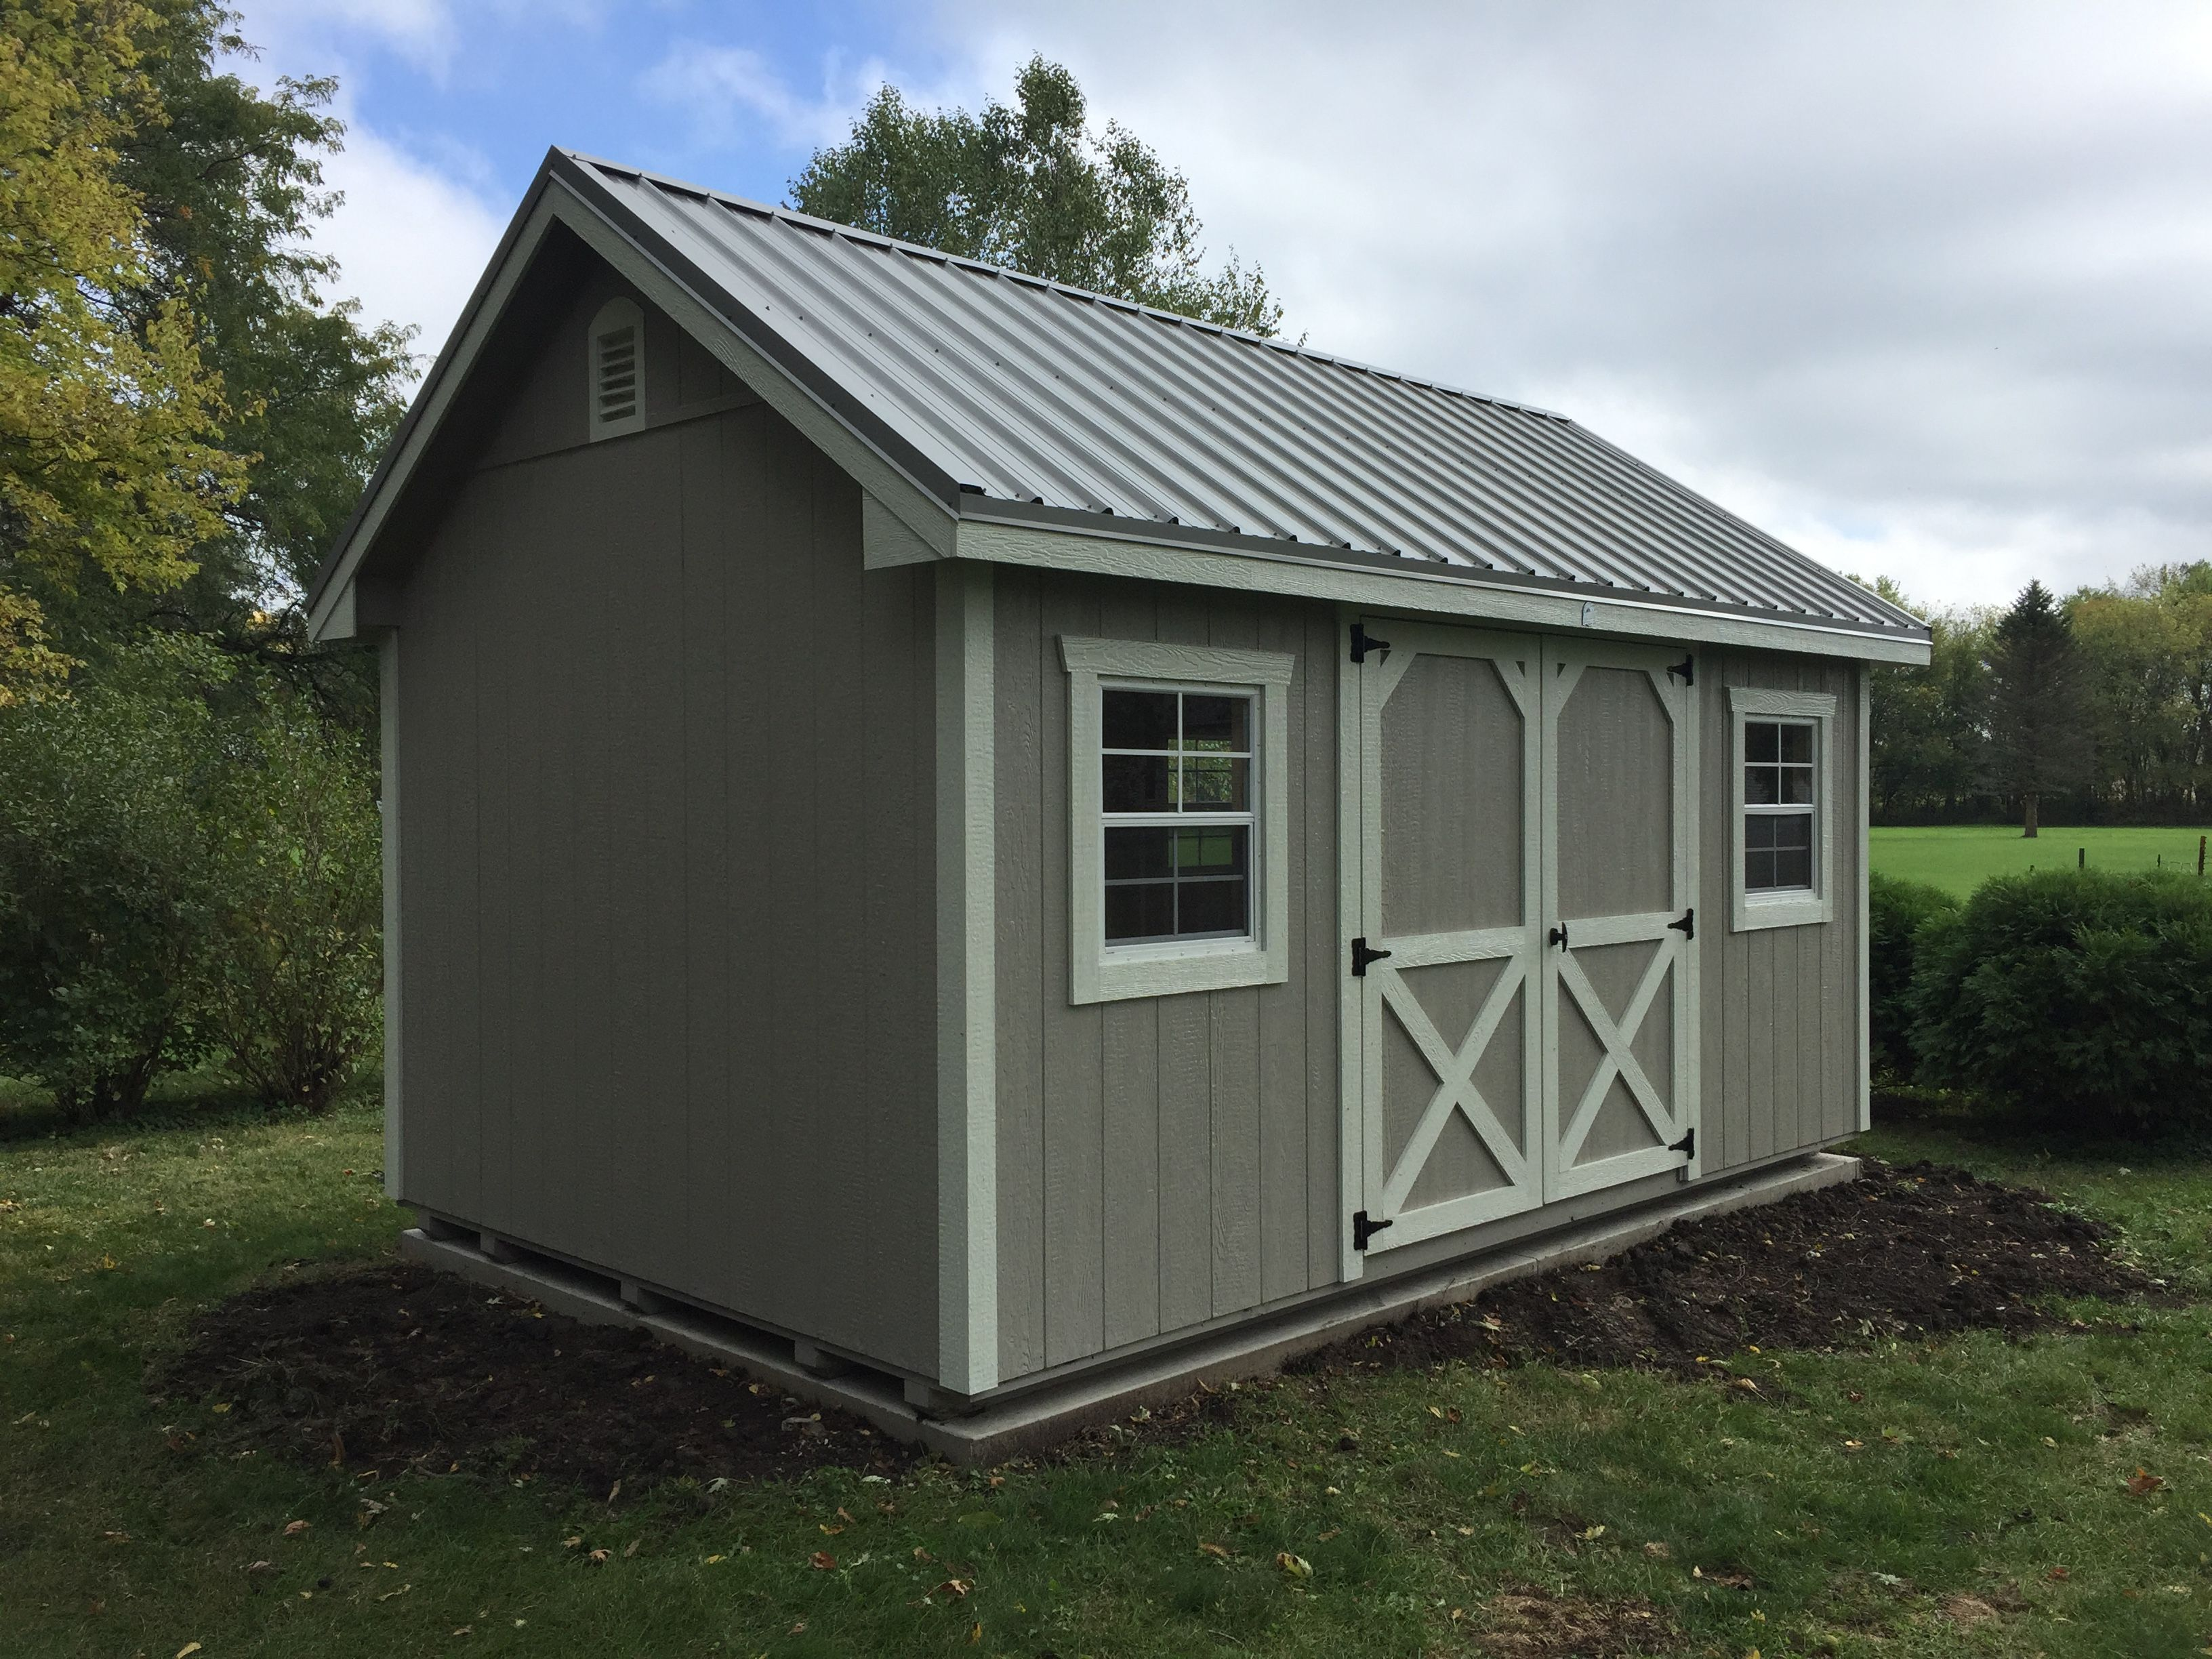 10 X 16 New England Shed Pewter Grey Rood Ash Grey Walls Alamo White Trim 6 Door 8 12 Roof 24 X 27 Trimmed Windows Shed Sheds For Sale High Walls